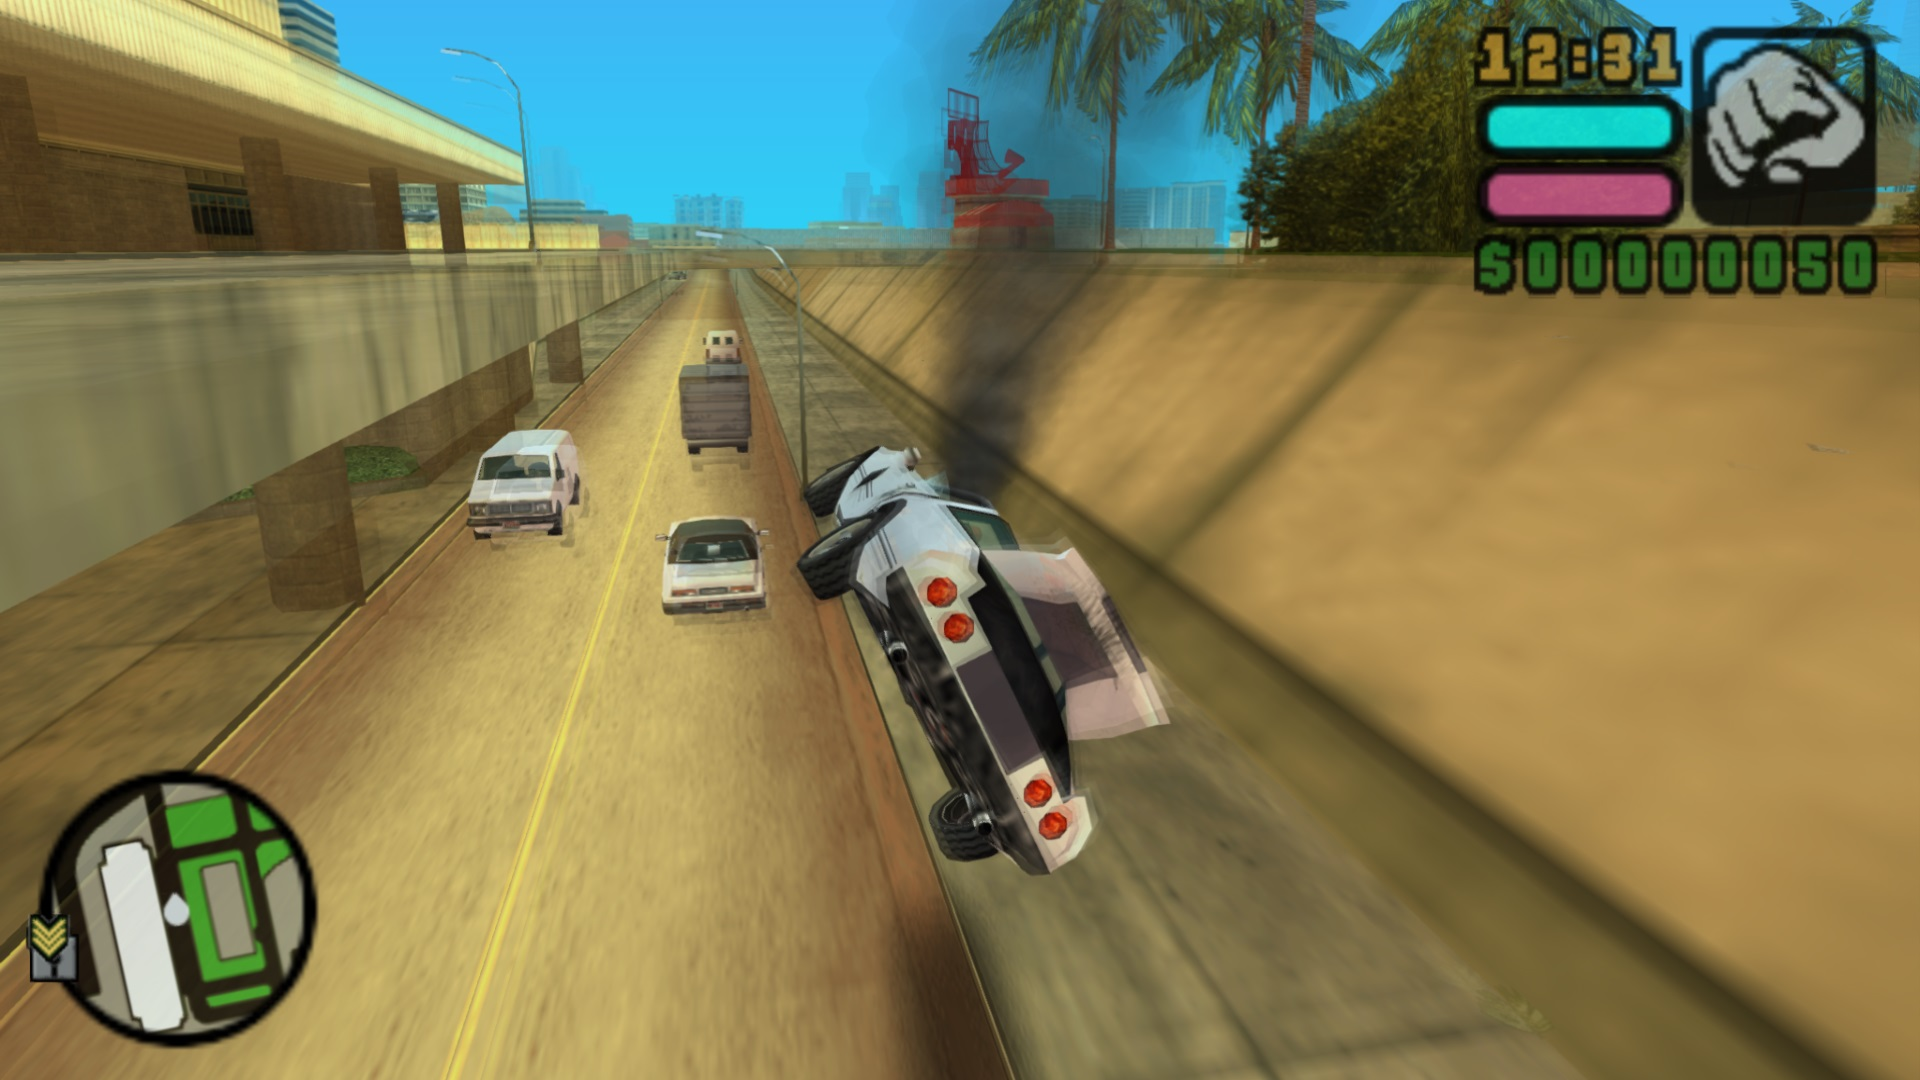 Gta Vice City Psp Iso Download Tpb - bestlinesos's blog